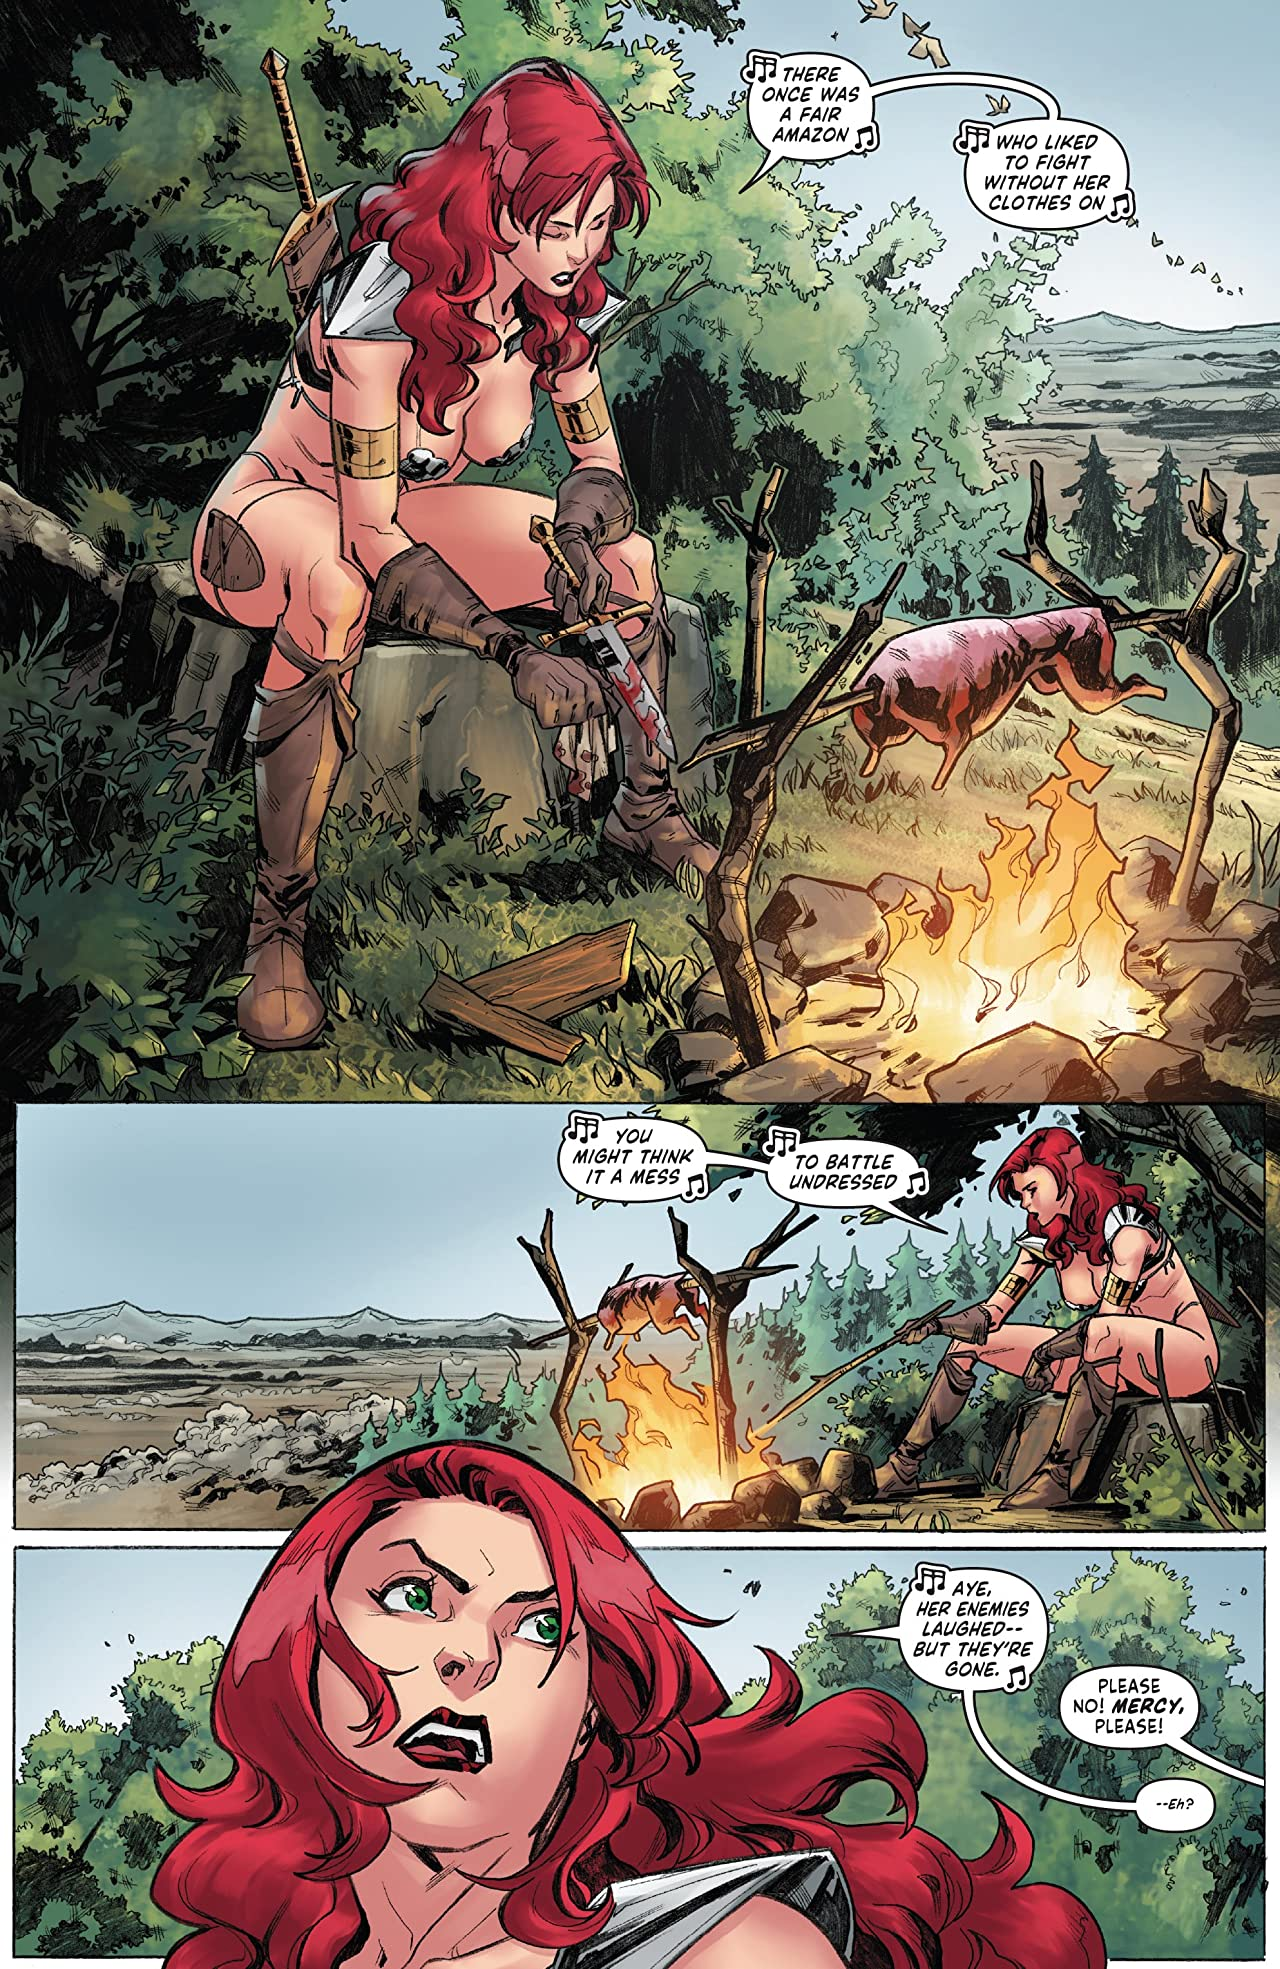 Red Sonja Vol. 4 #25